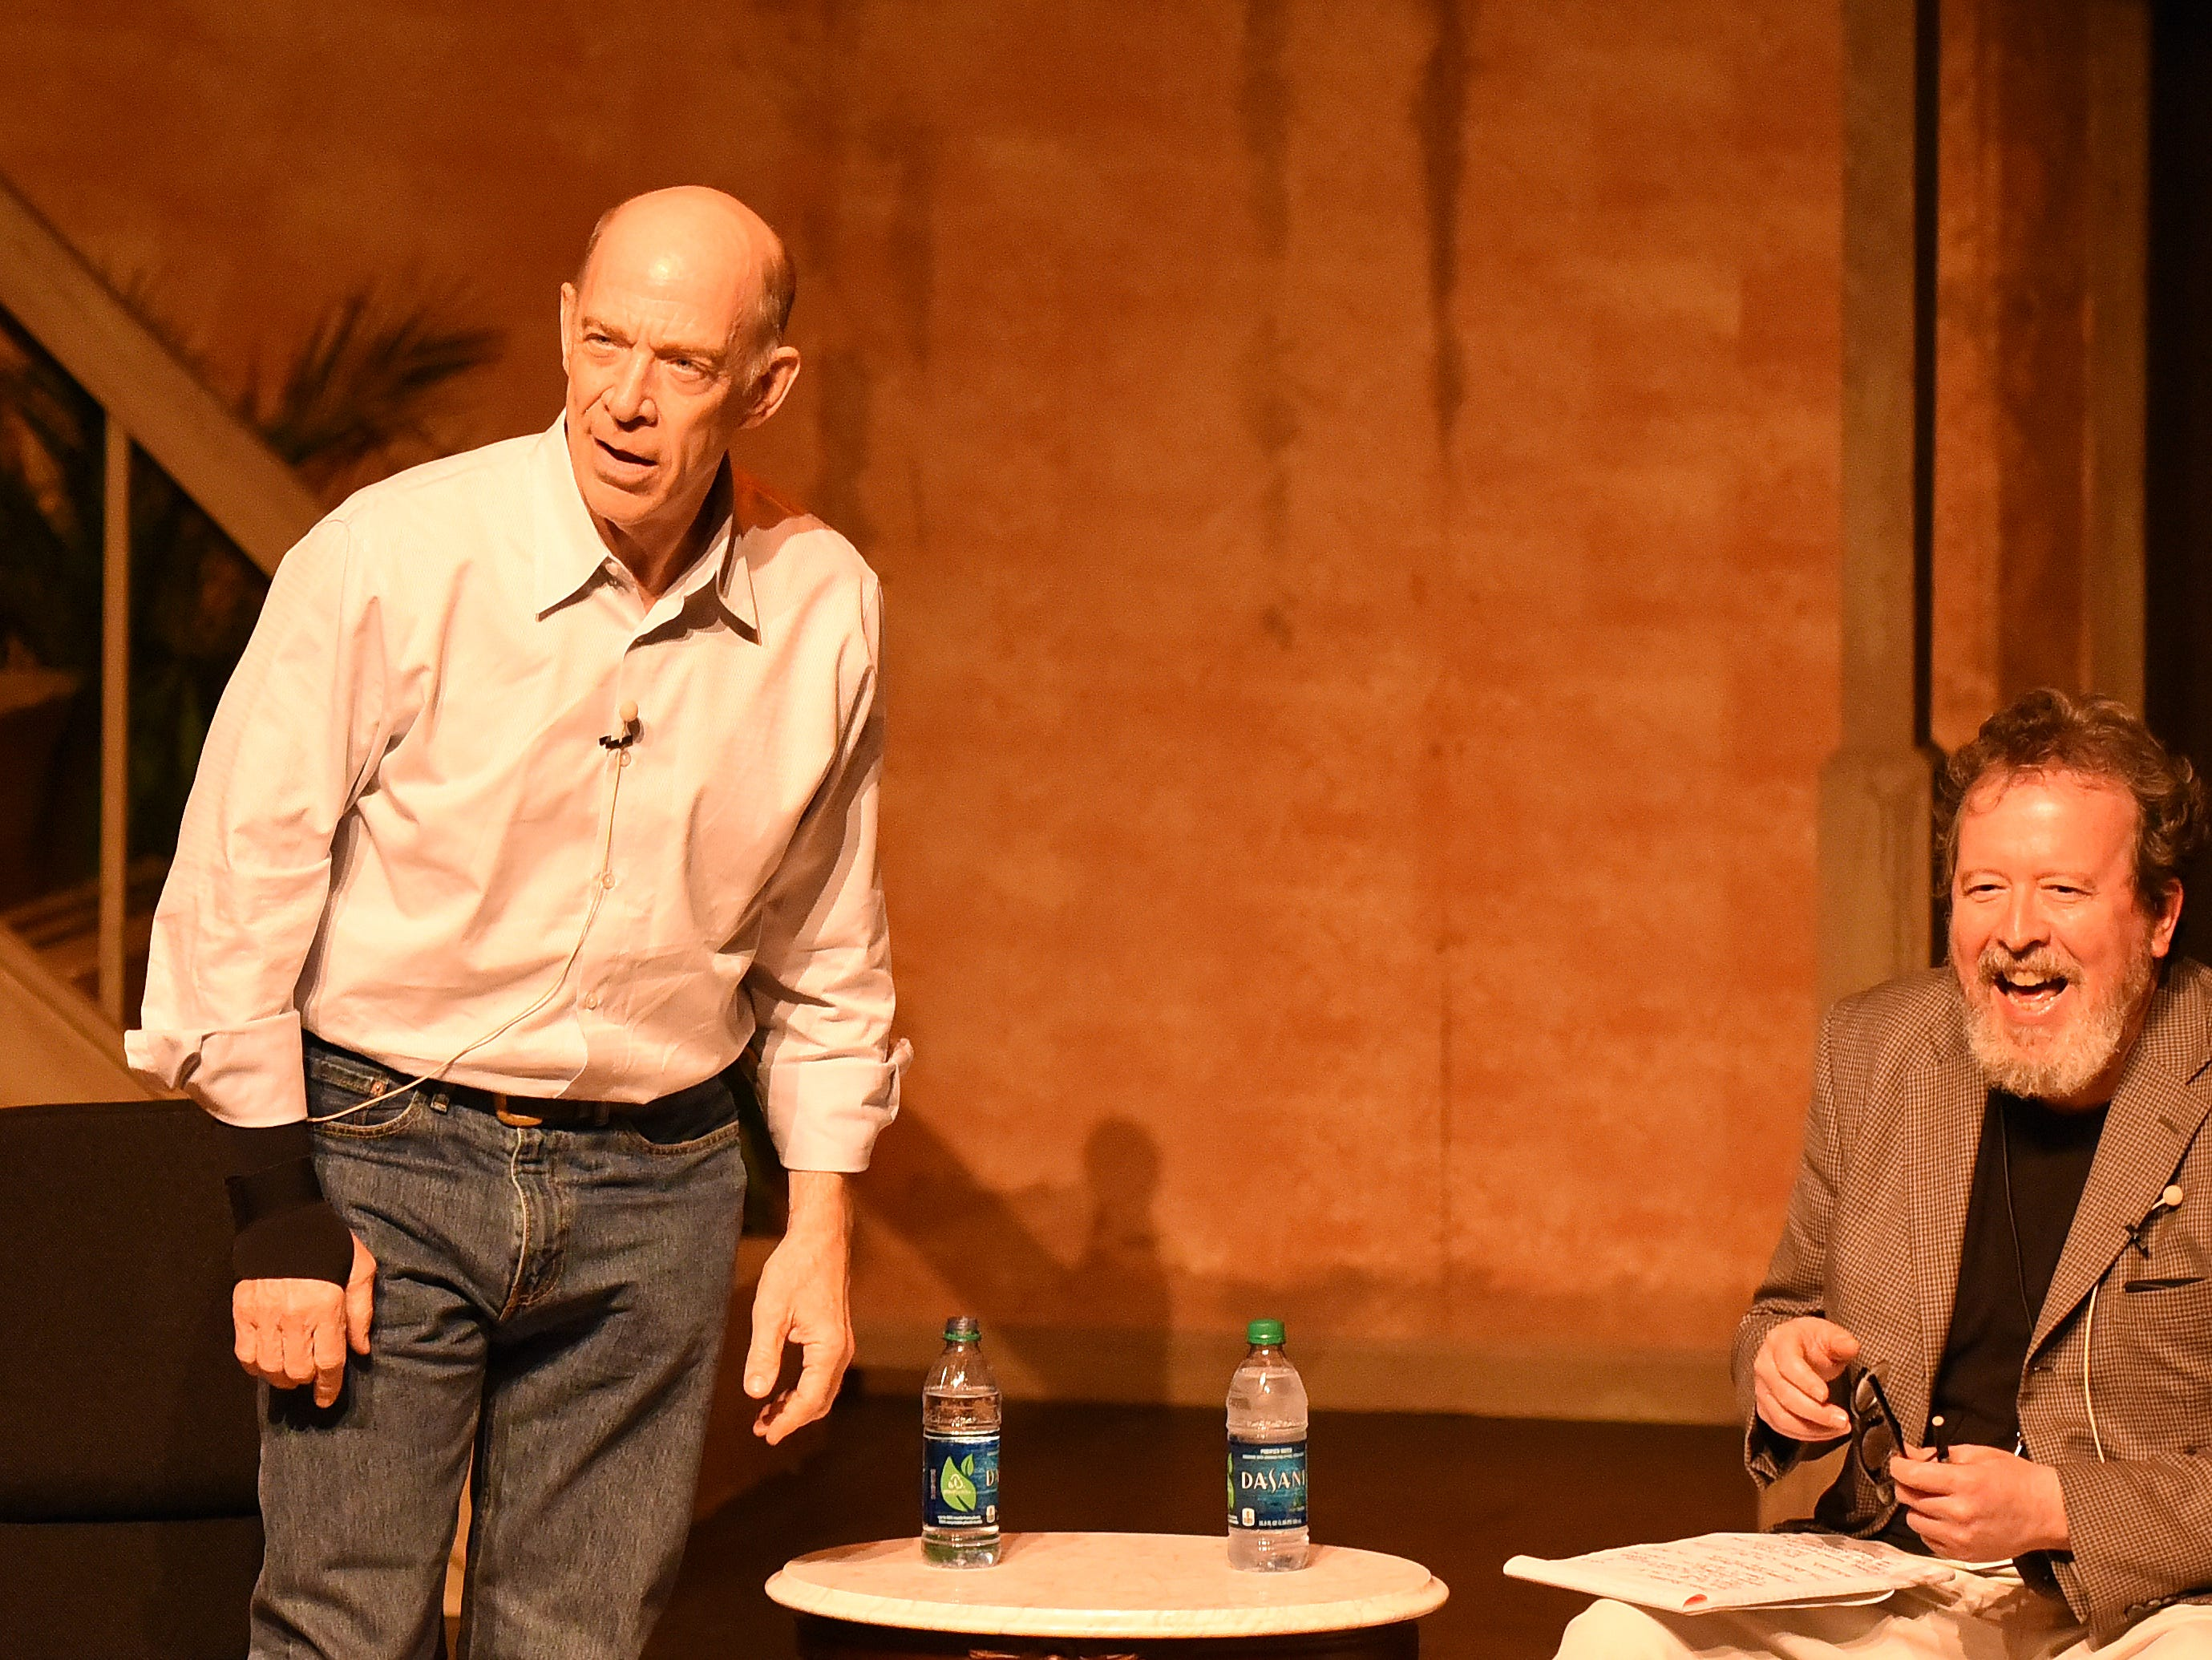 Mark Hinson interviews Oscar winner JK Simmons on stage at Theatre Tallahassee, as a fundraiser for the Symphony, and as part of Word South festival in 2015.